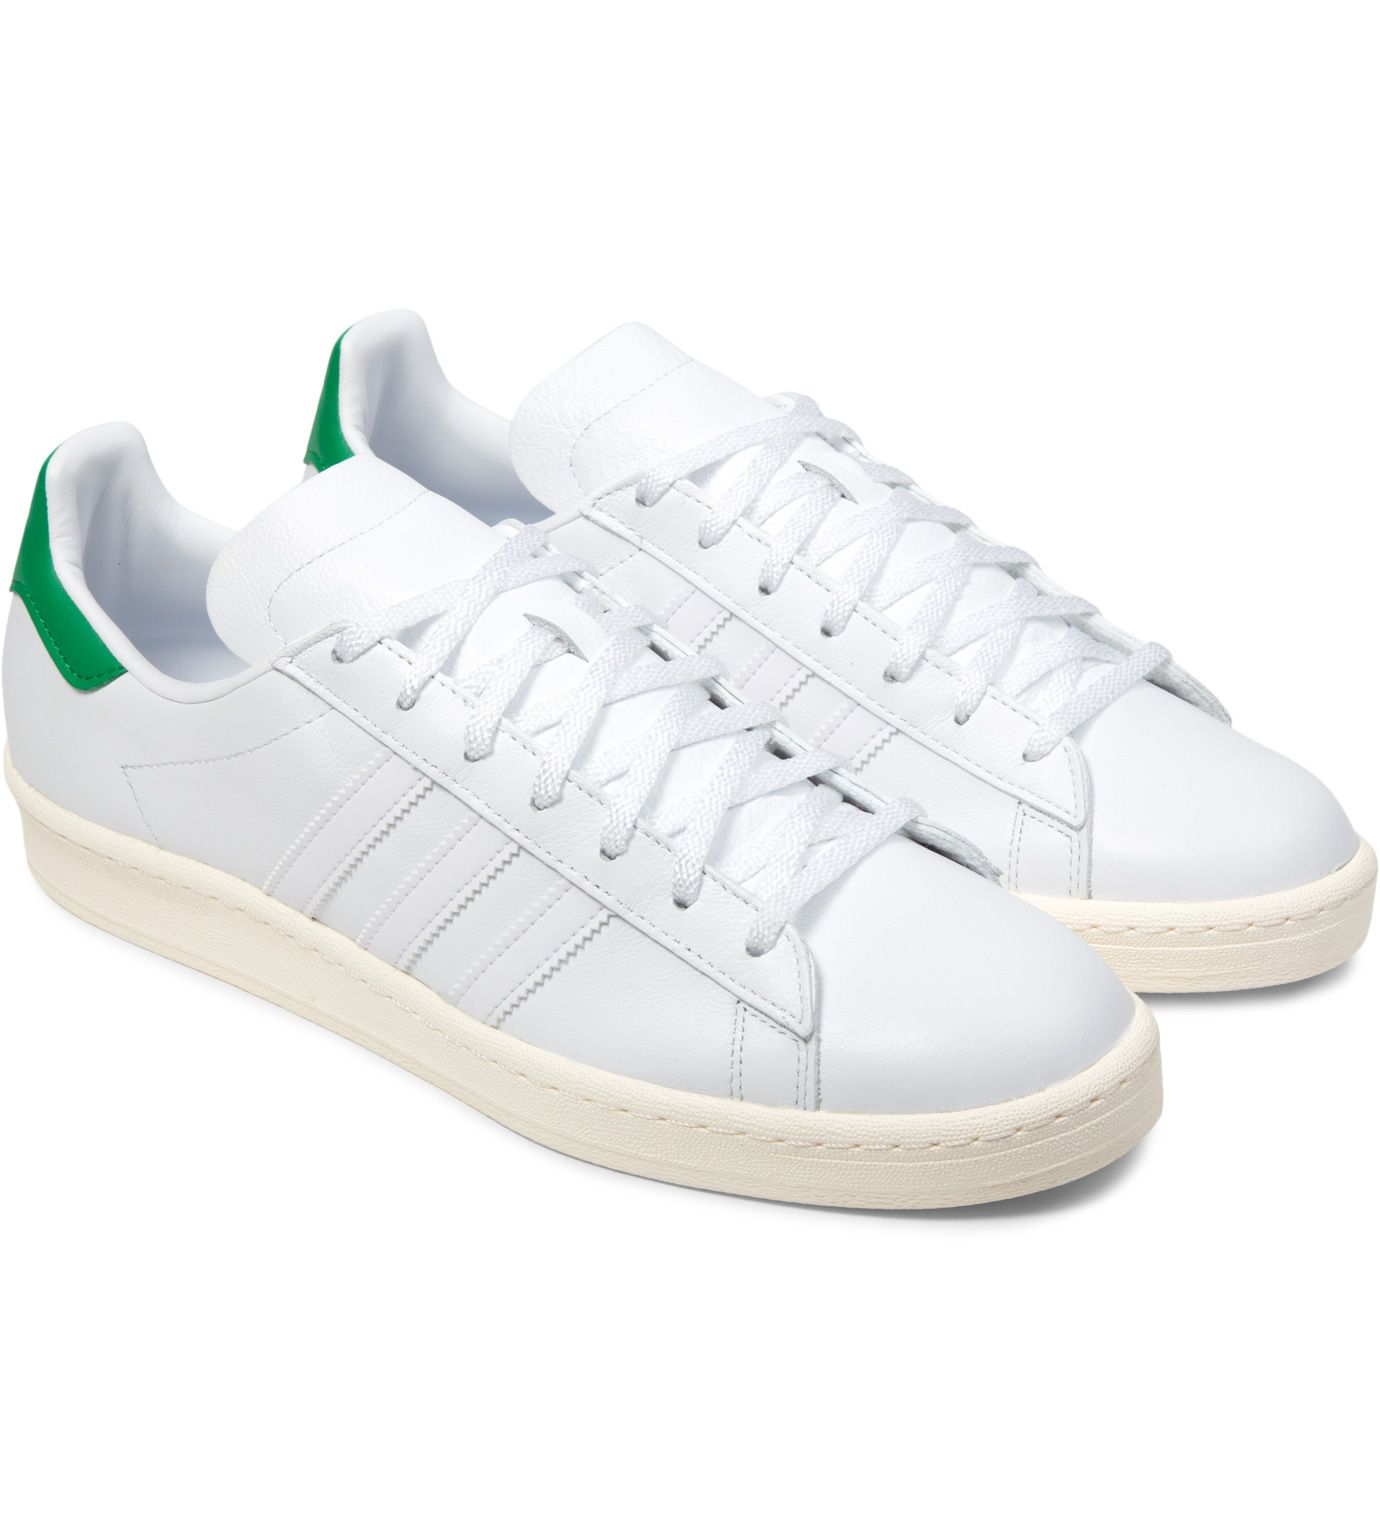 adidas Originals adidas Originals x NIGO White Green Cream White Campus 80s  Shoes 698df8586